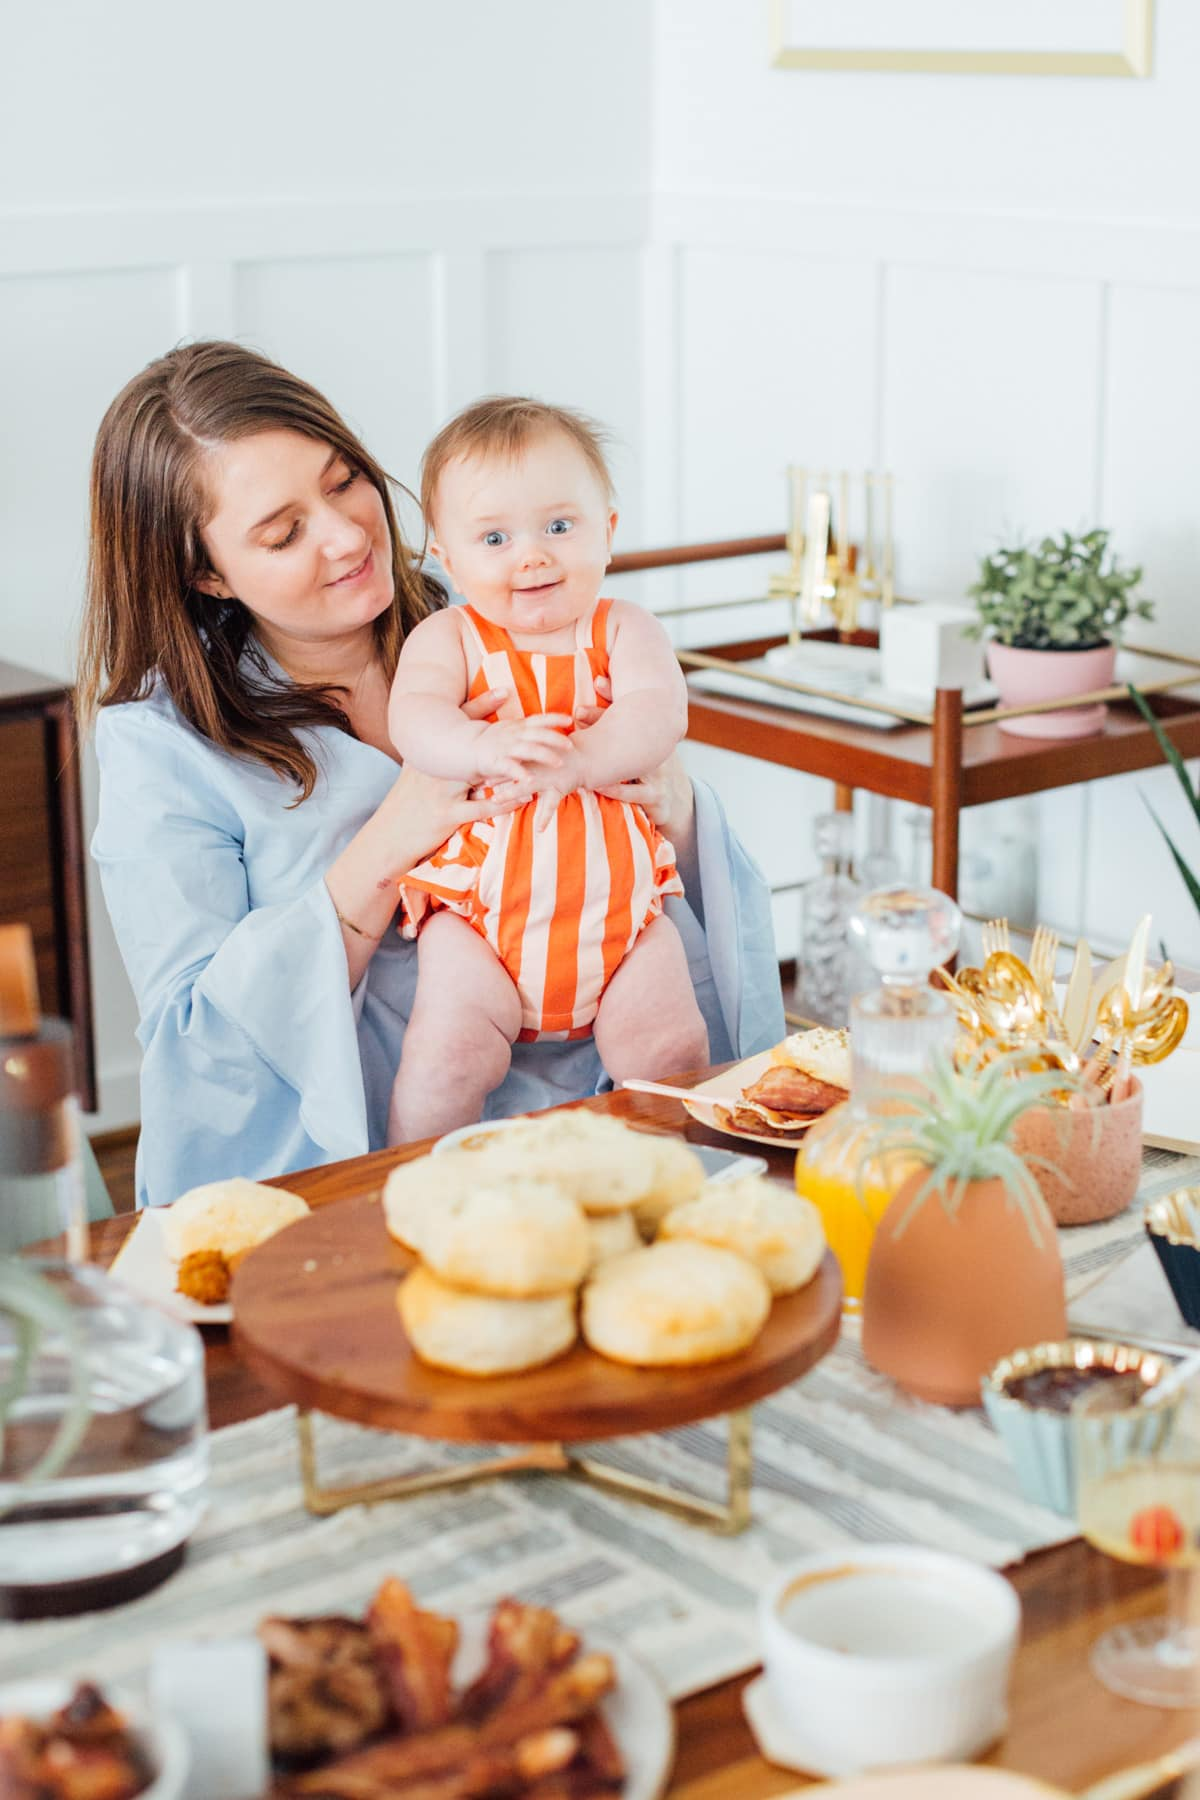 Real Entertaining: Easy Garlic & Herb Cheese Biscuits + Our Family Brunch!